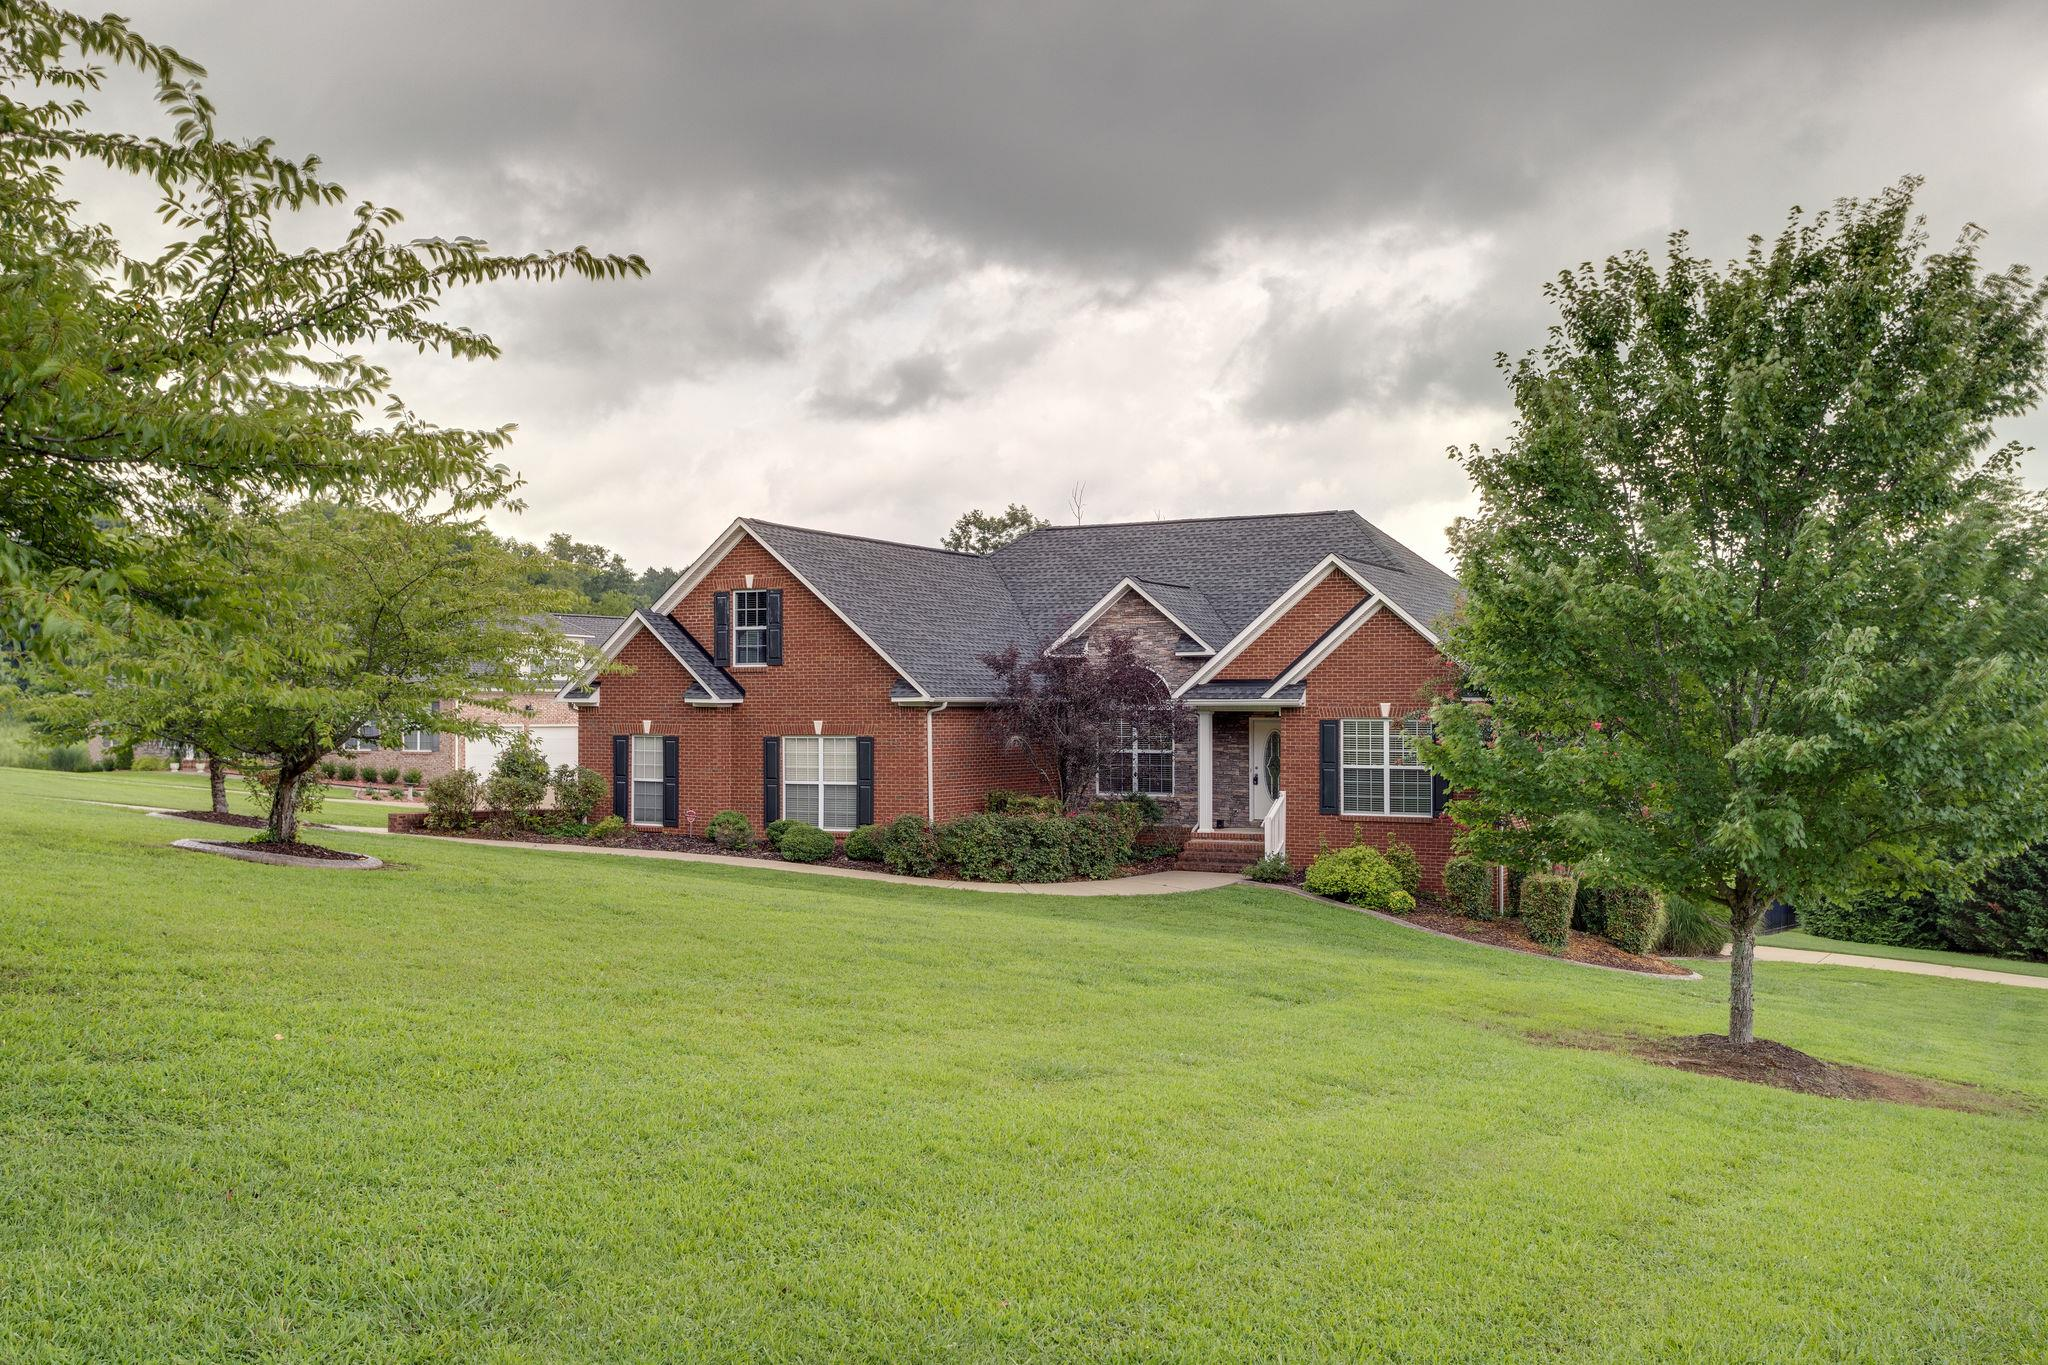 1195 Cliff White Rd, Columbia, Tennessee